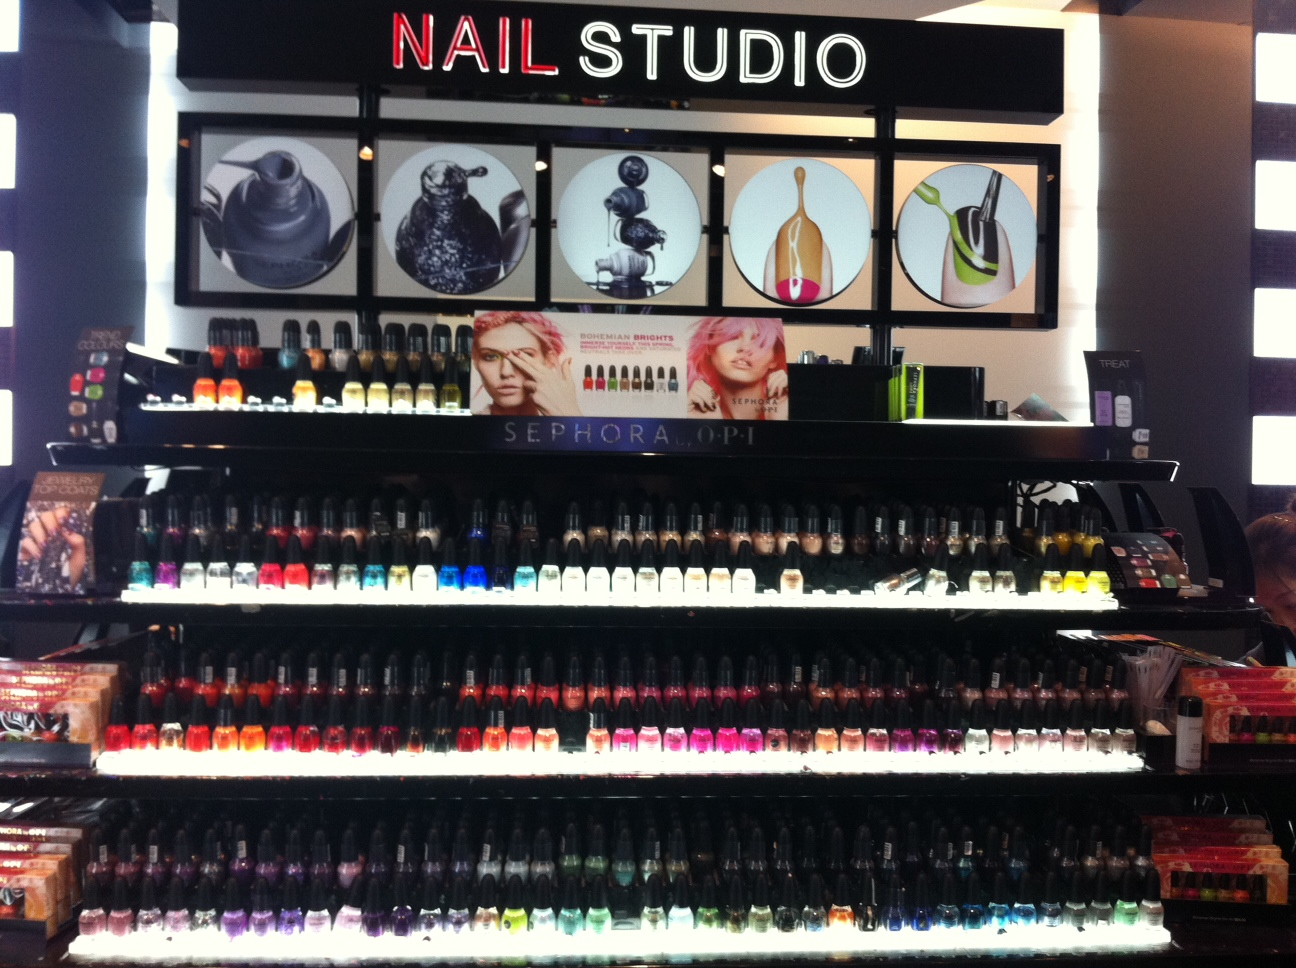 Lash Bar Check Nail Station Check Sephora S New Store: Sephora To Unveil Nail Studios Where DIY Manicures Are A